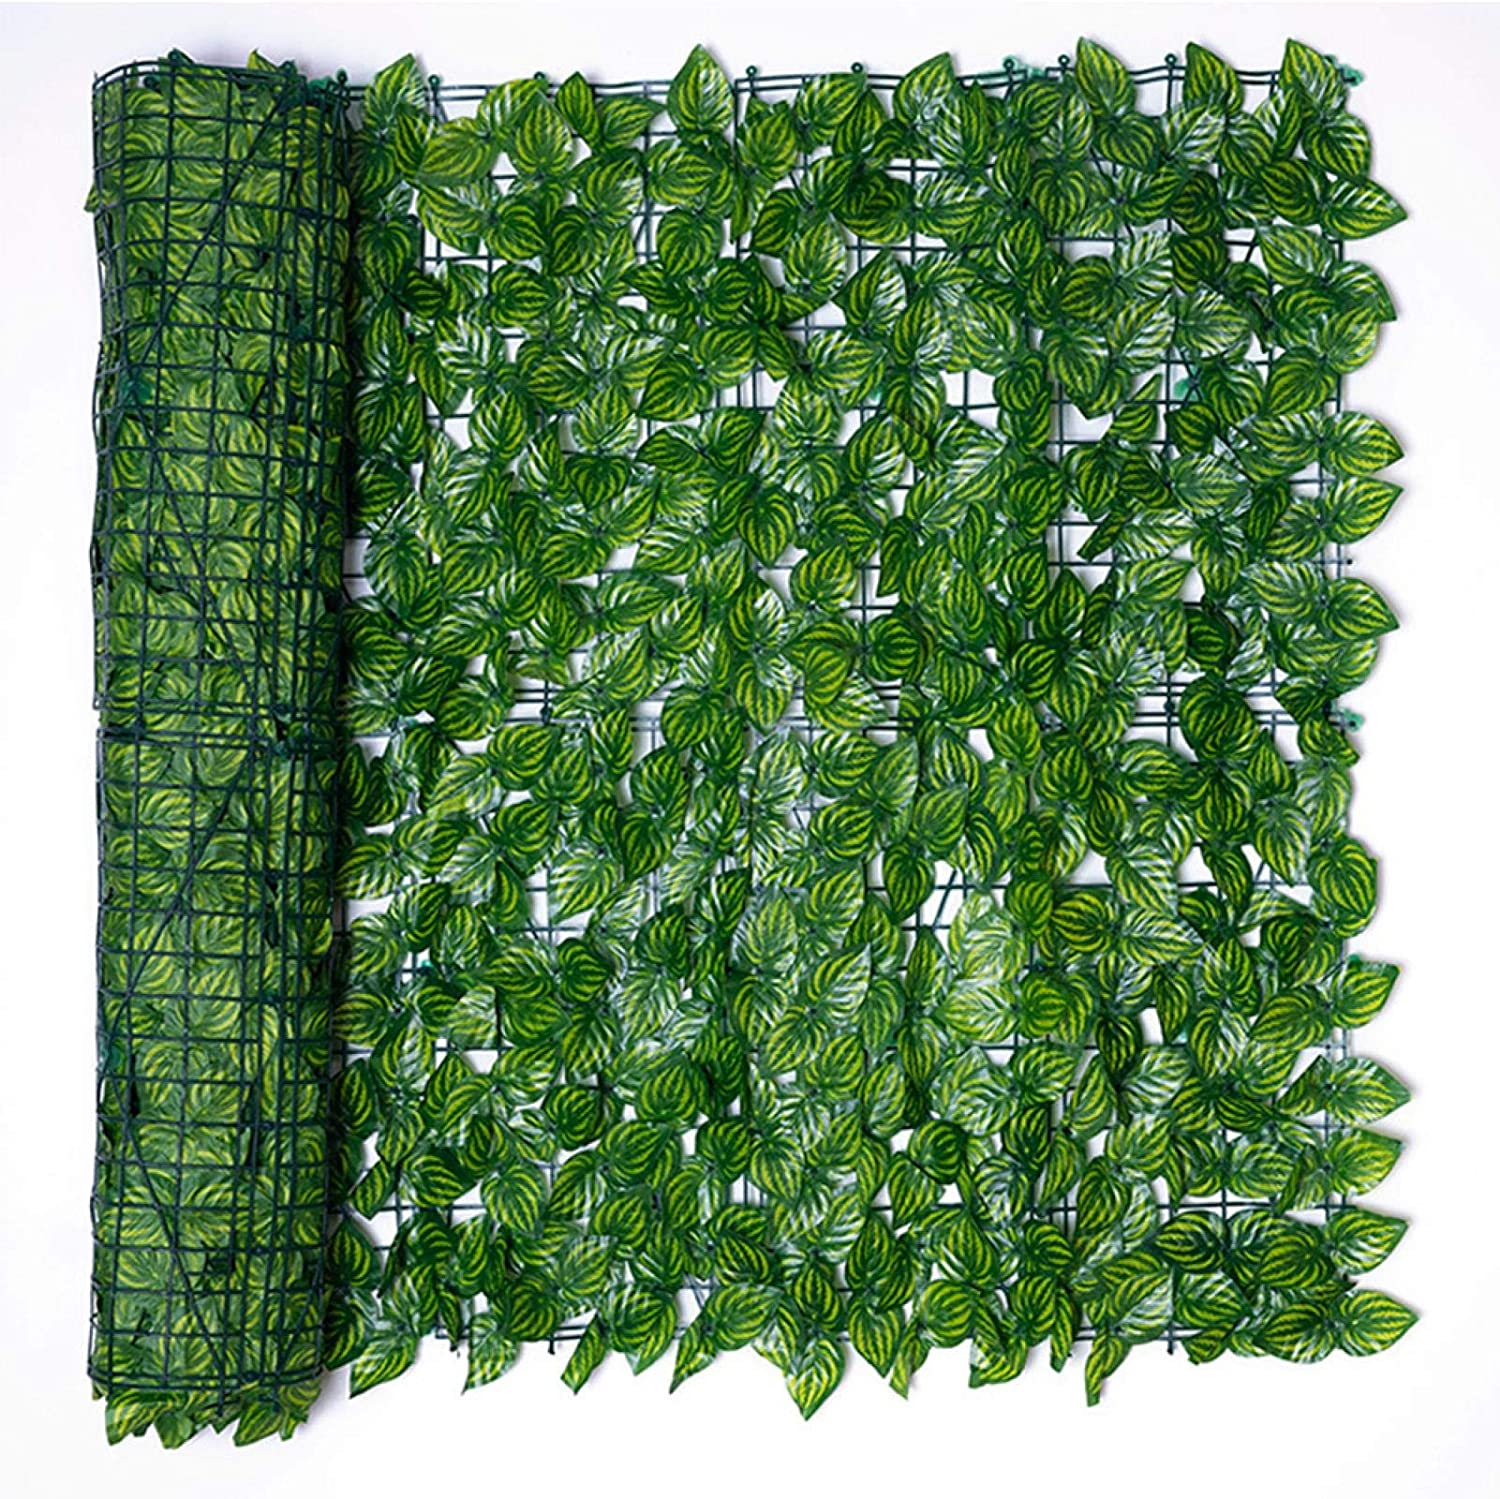 DENPETEC Artificial Ivy Privacy Fence Screen, Faux Ivy Hedge Fence and Vine Leaf Wall Screen Panels for Outdoor Garden, Home, Backyard and Decorations Green